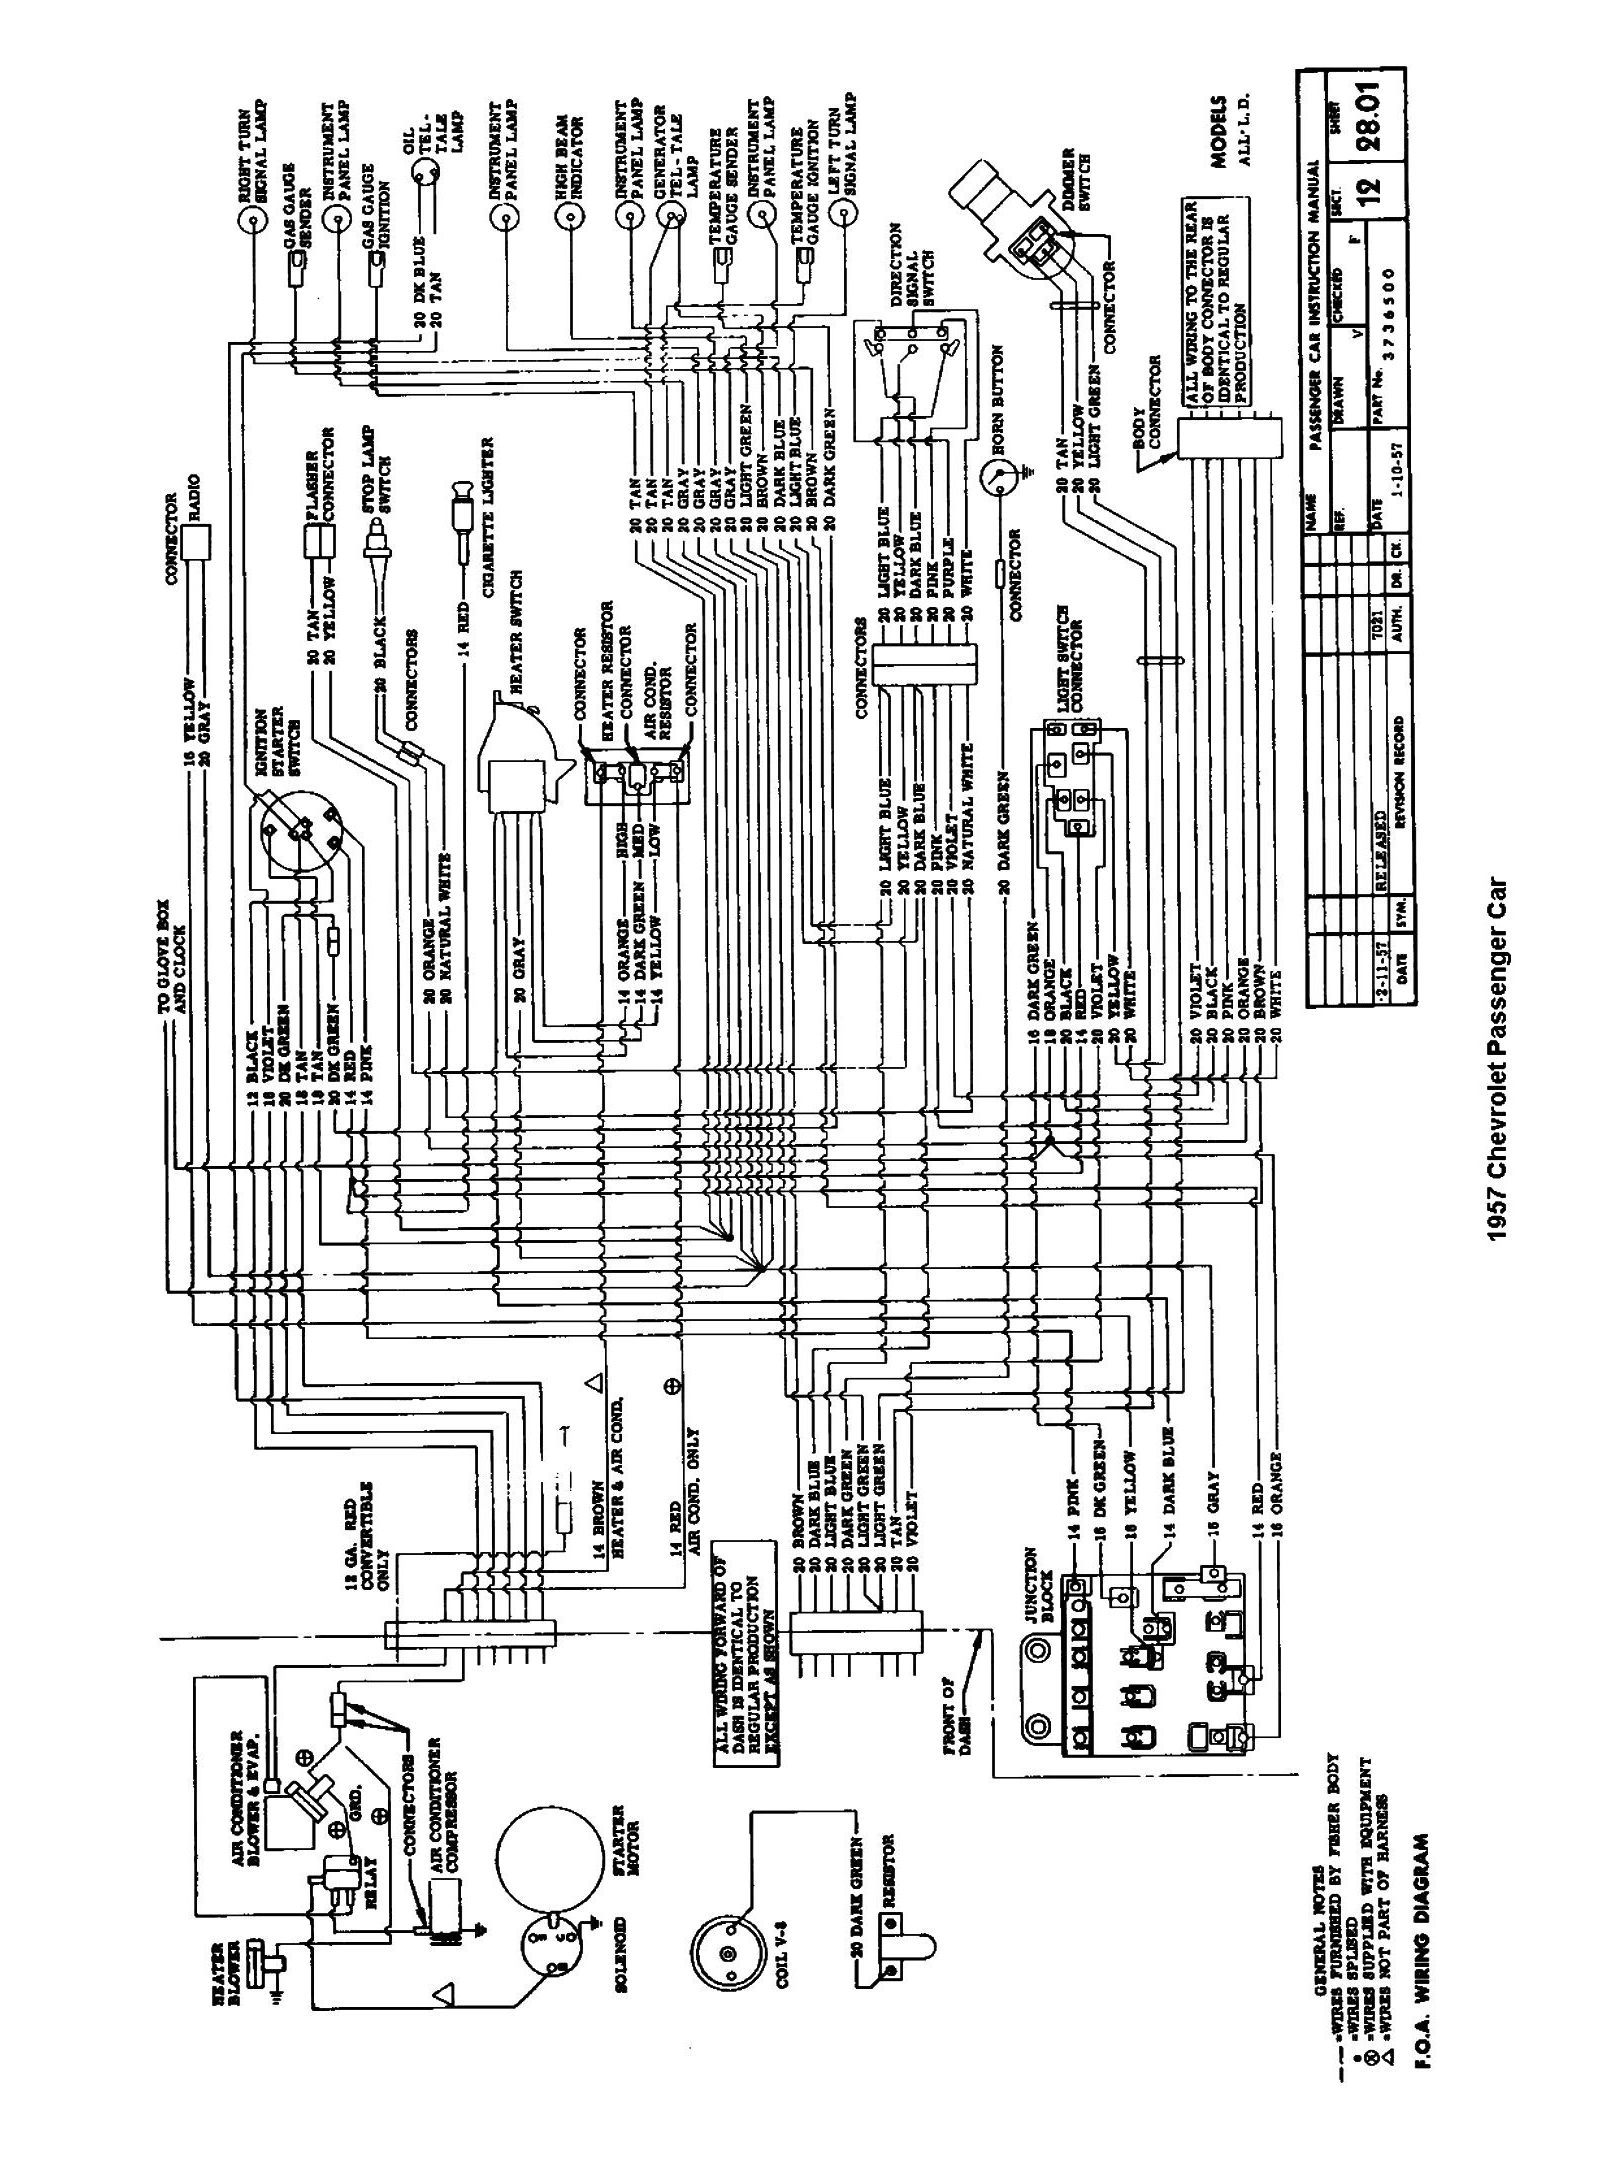 57car2 chevy wiring diagrams 1957 chevy truck wiring diagram at fashall.co